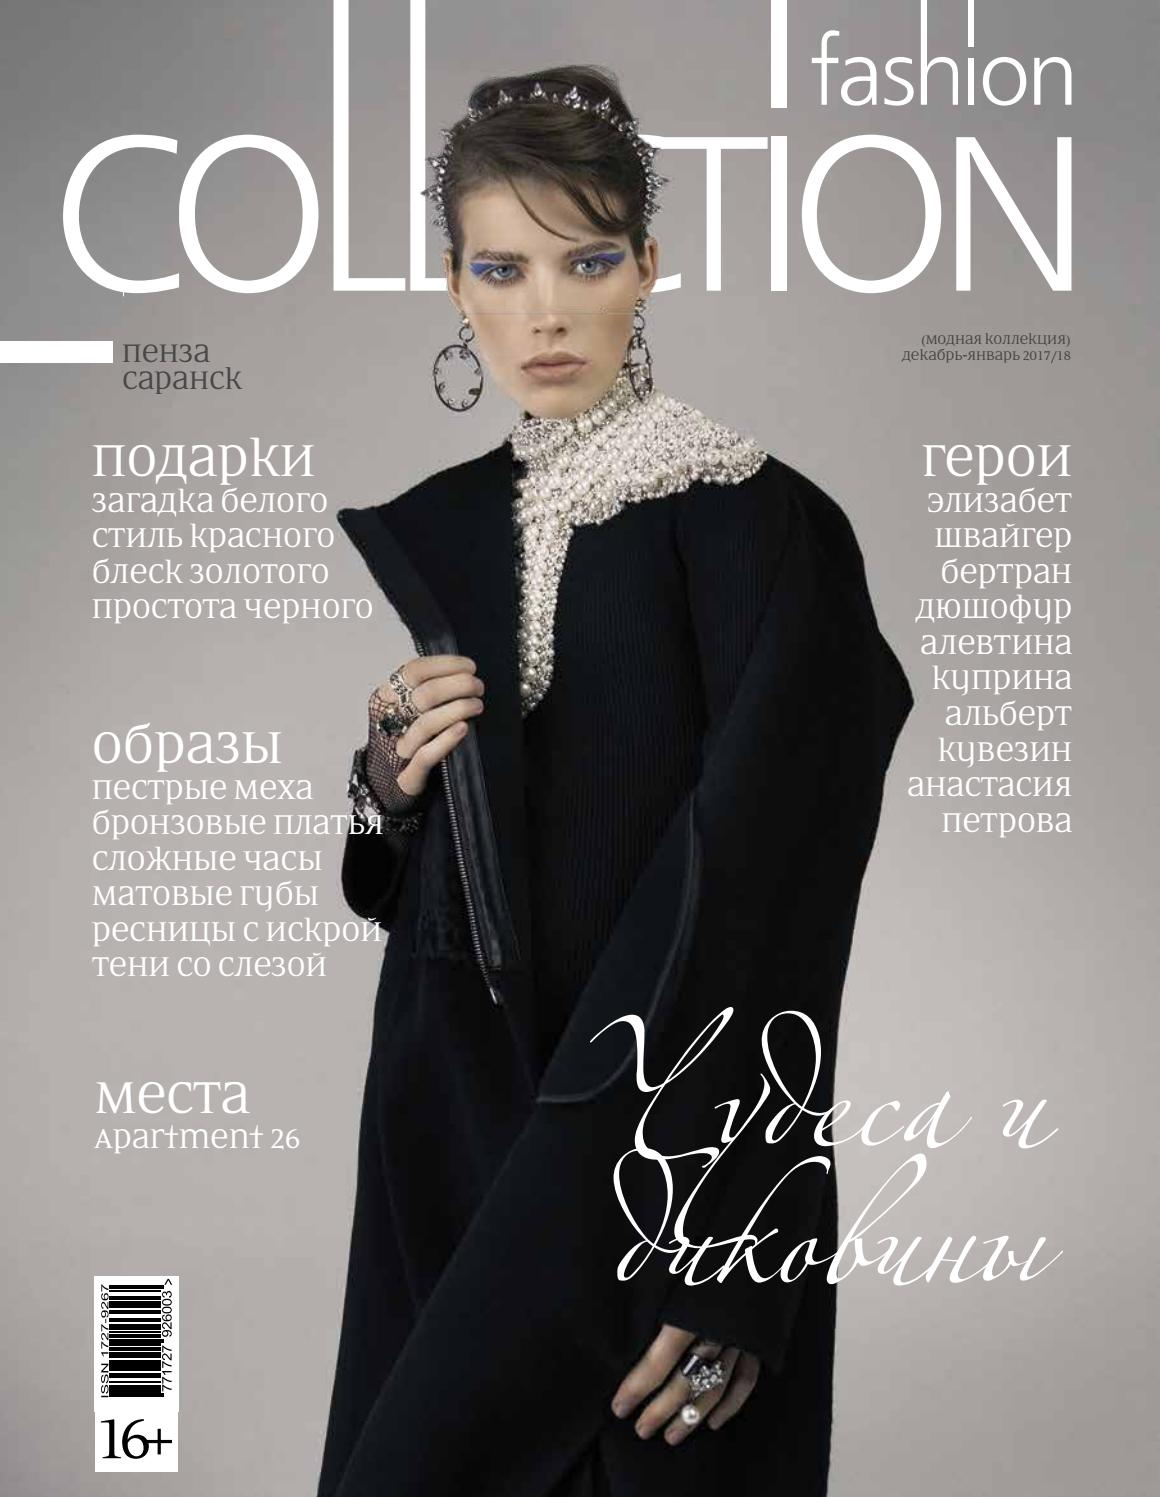 Fashion Collection December 2017 by Fashion Collection Пенза - issuu 22cf068d27434